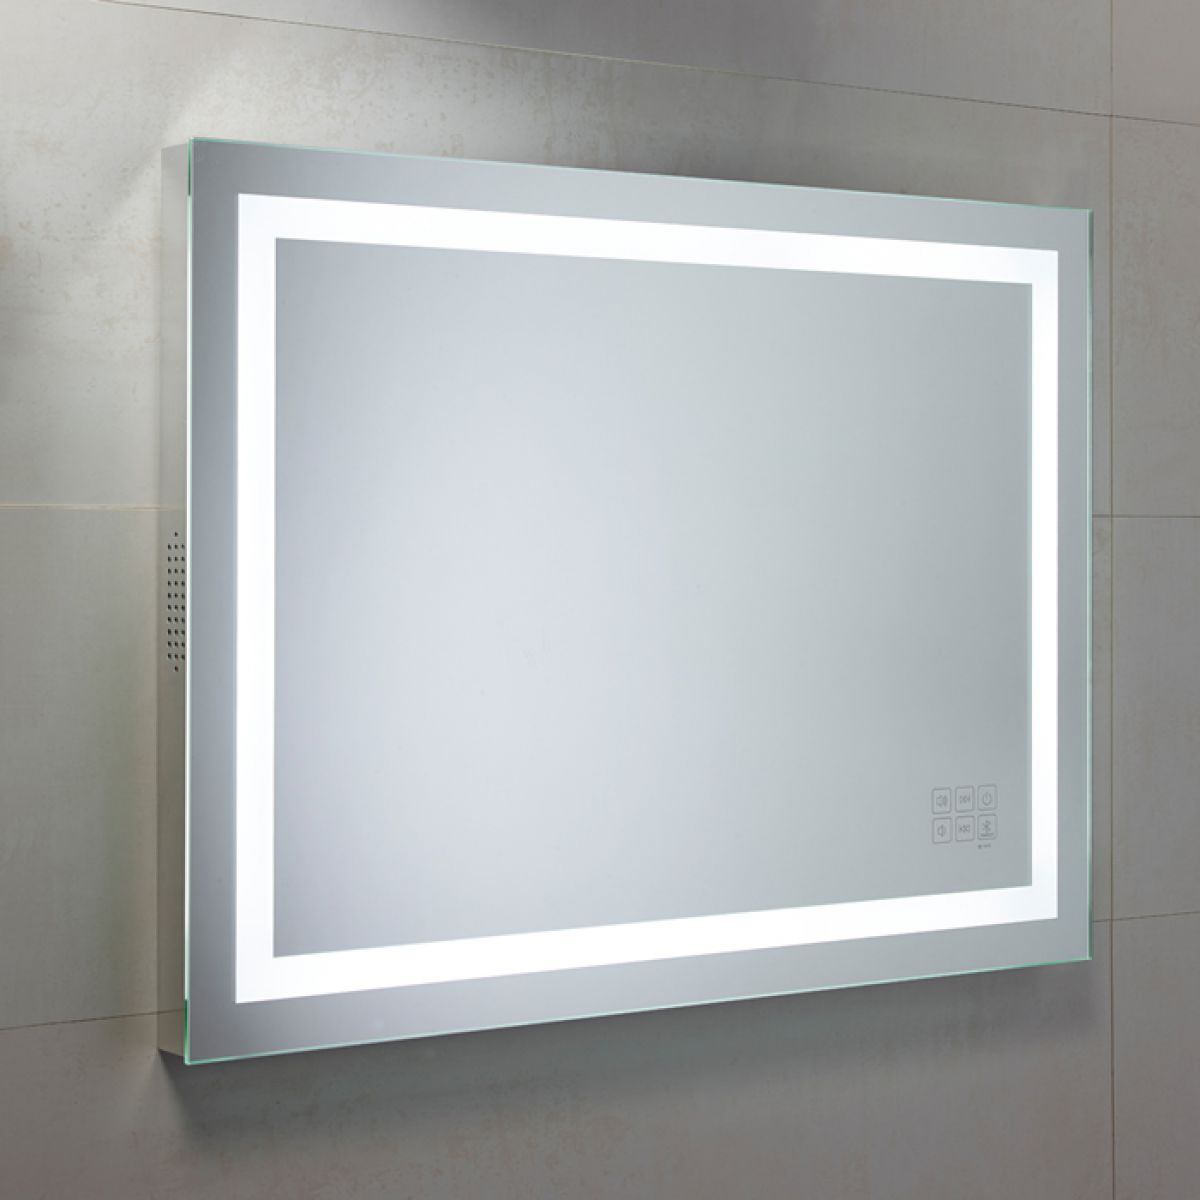 Luxury Platinum Range 1013  Illuminated Bathroom Mirrors  Light Mirrors